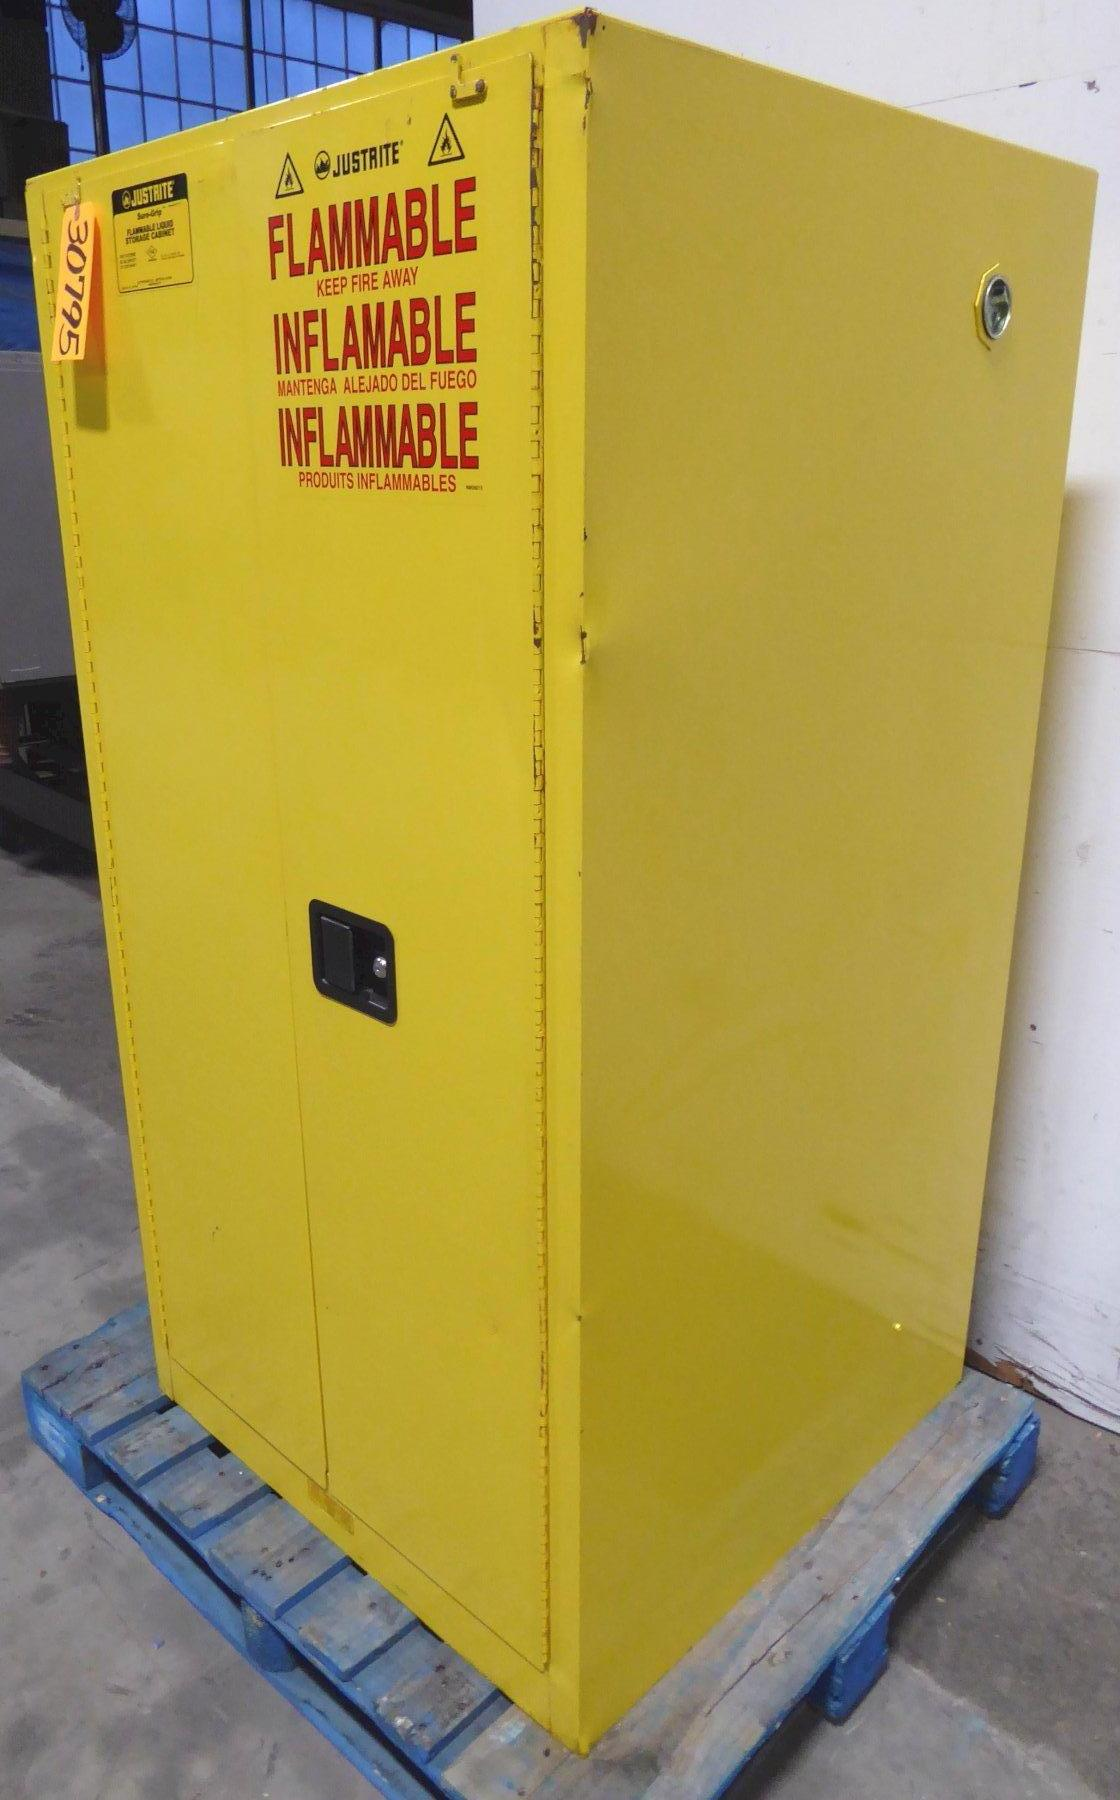 "Justrite Flammable Storage Cabinet Model SC29602, 45 Gallon Capacity, (2) Adjustable Shelves, Double Door, 34"" x 34"" x 65""H, Nice"